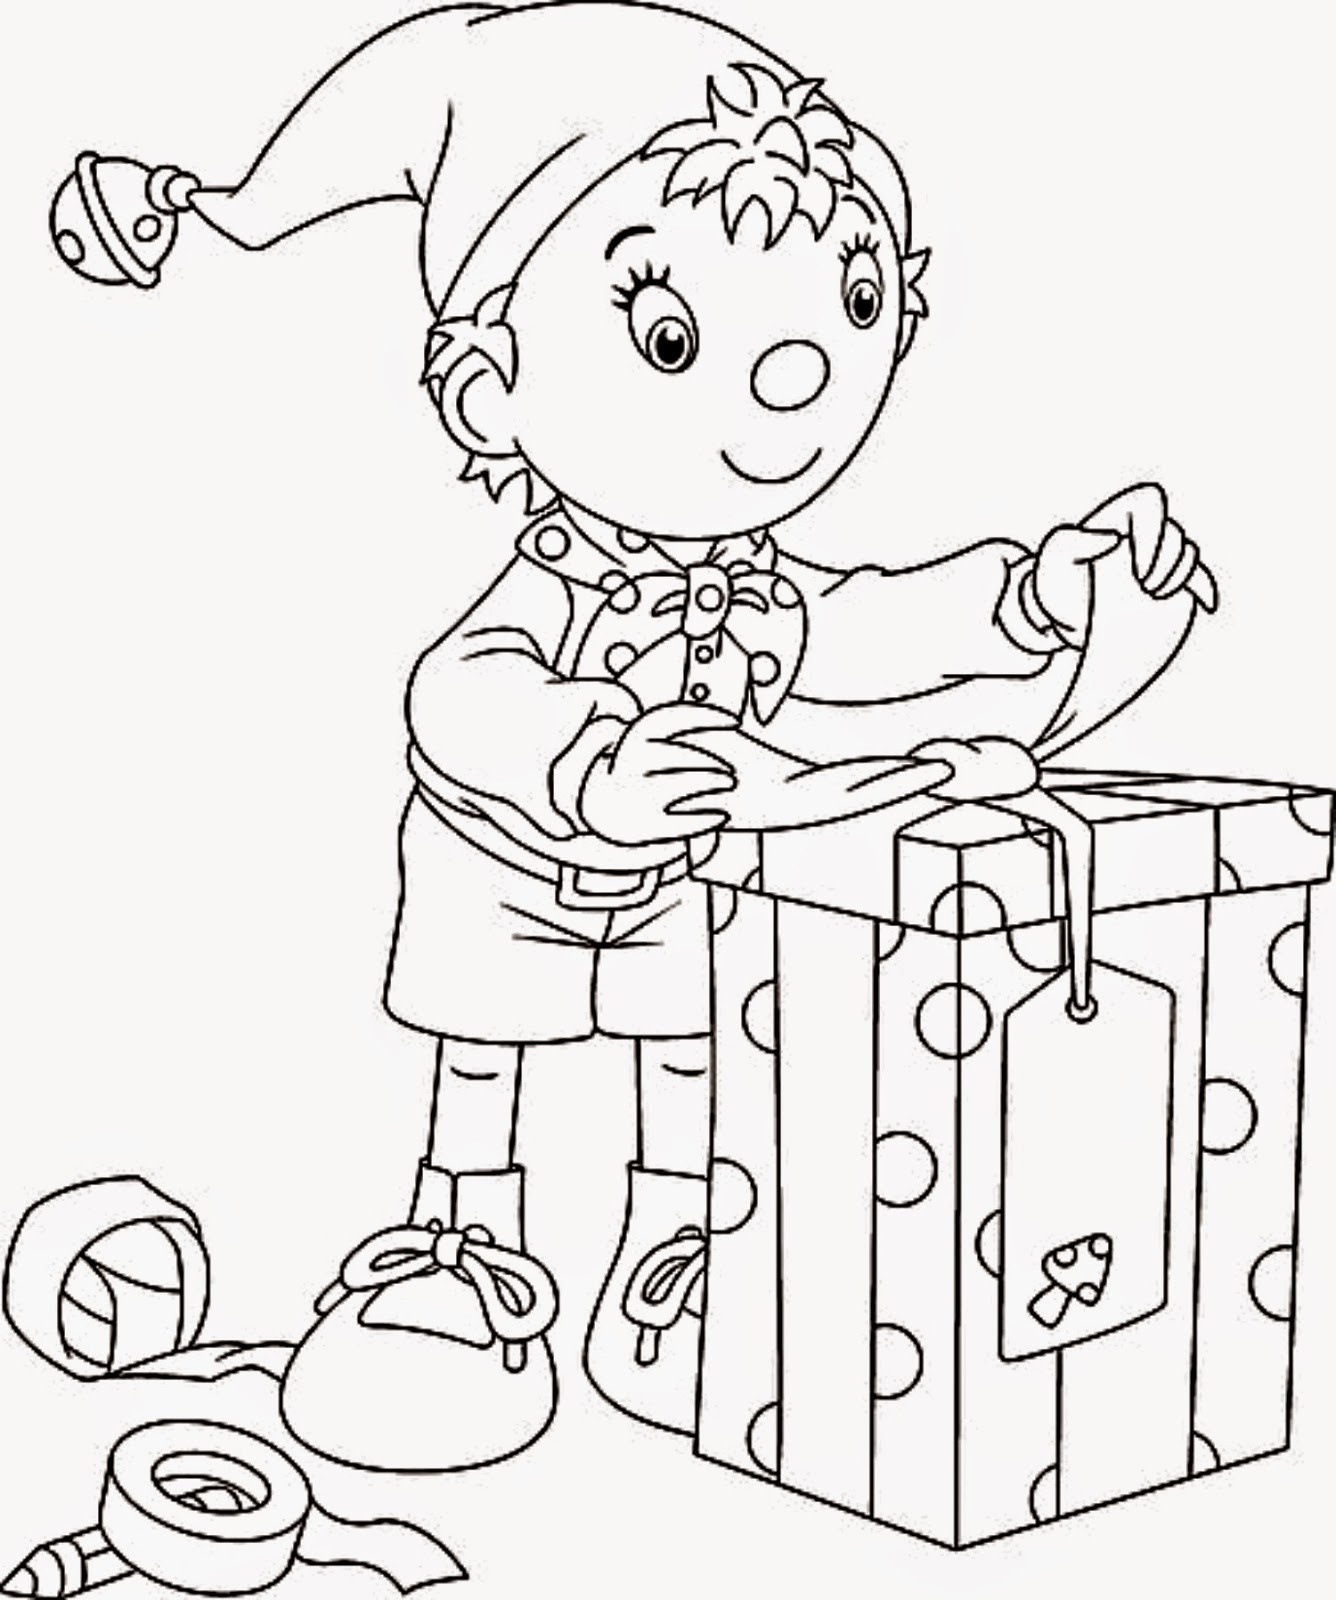 Christmas Coloring Pages Elf On The Shelf With Elves Best